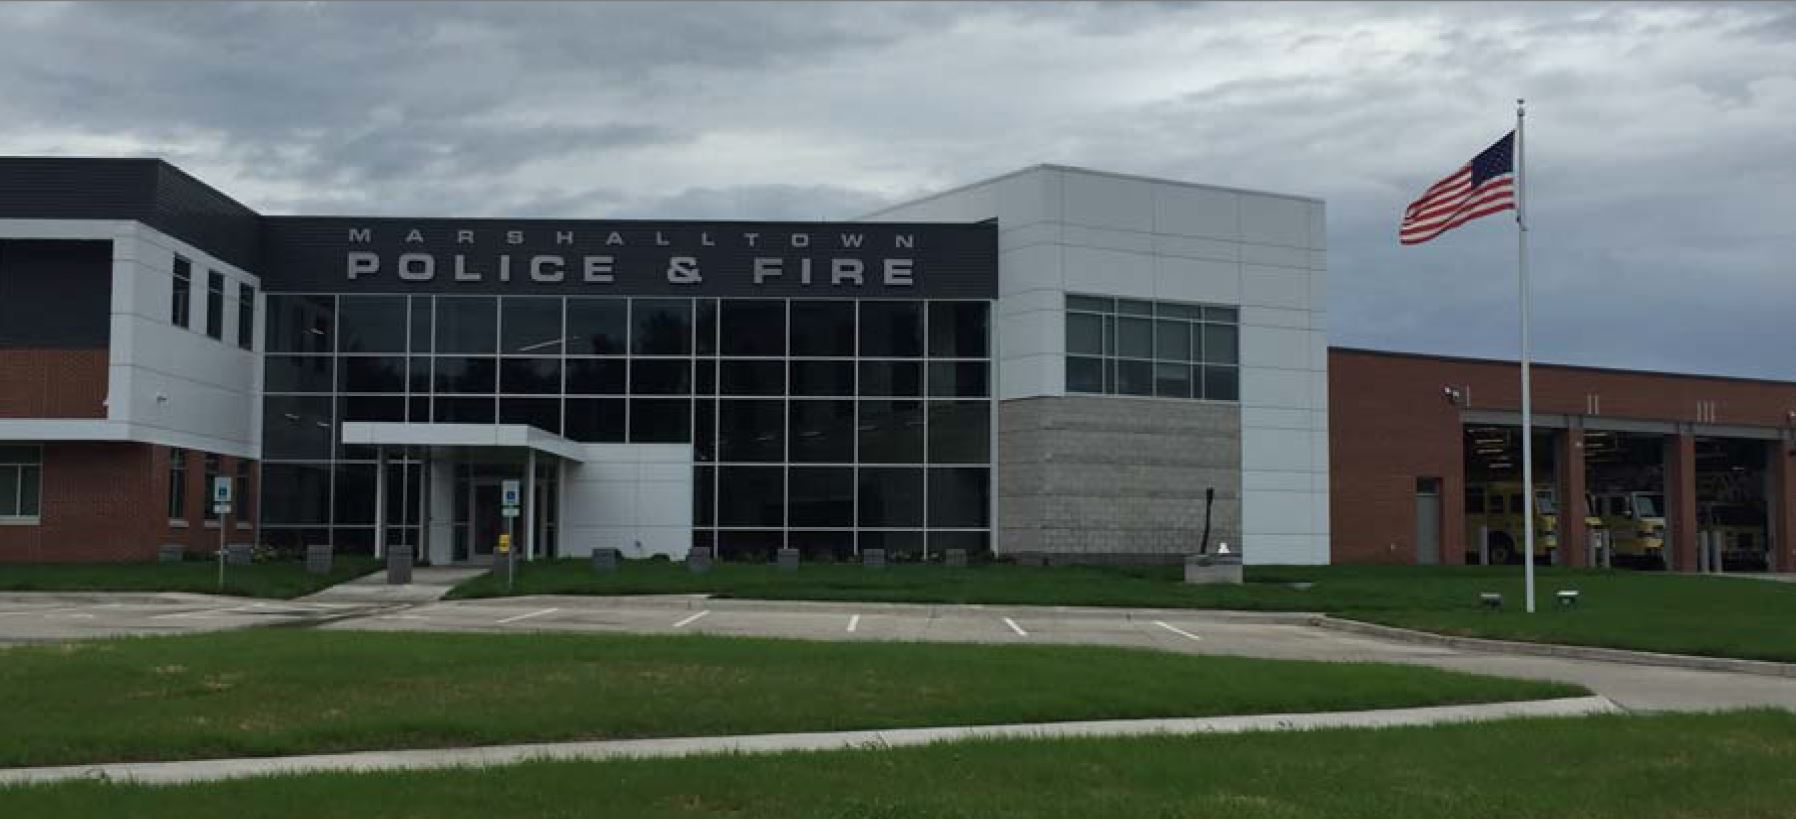 Police and Fire Building